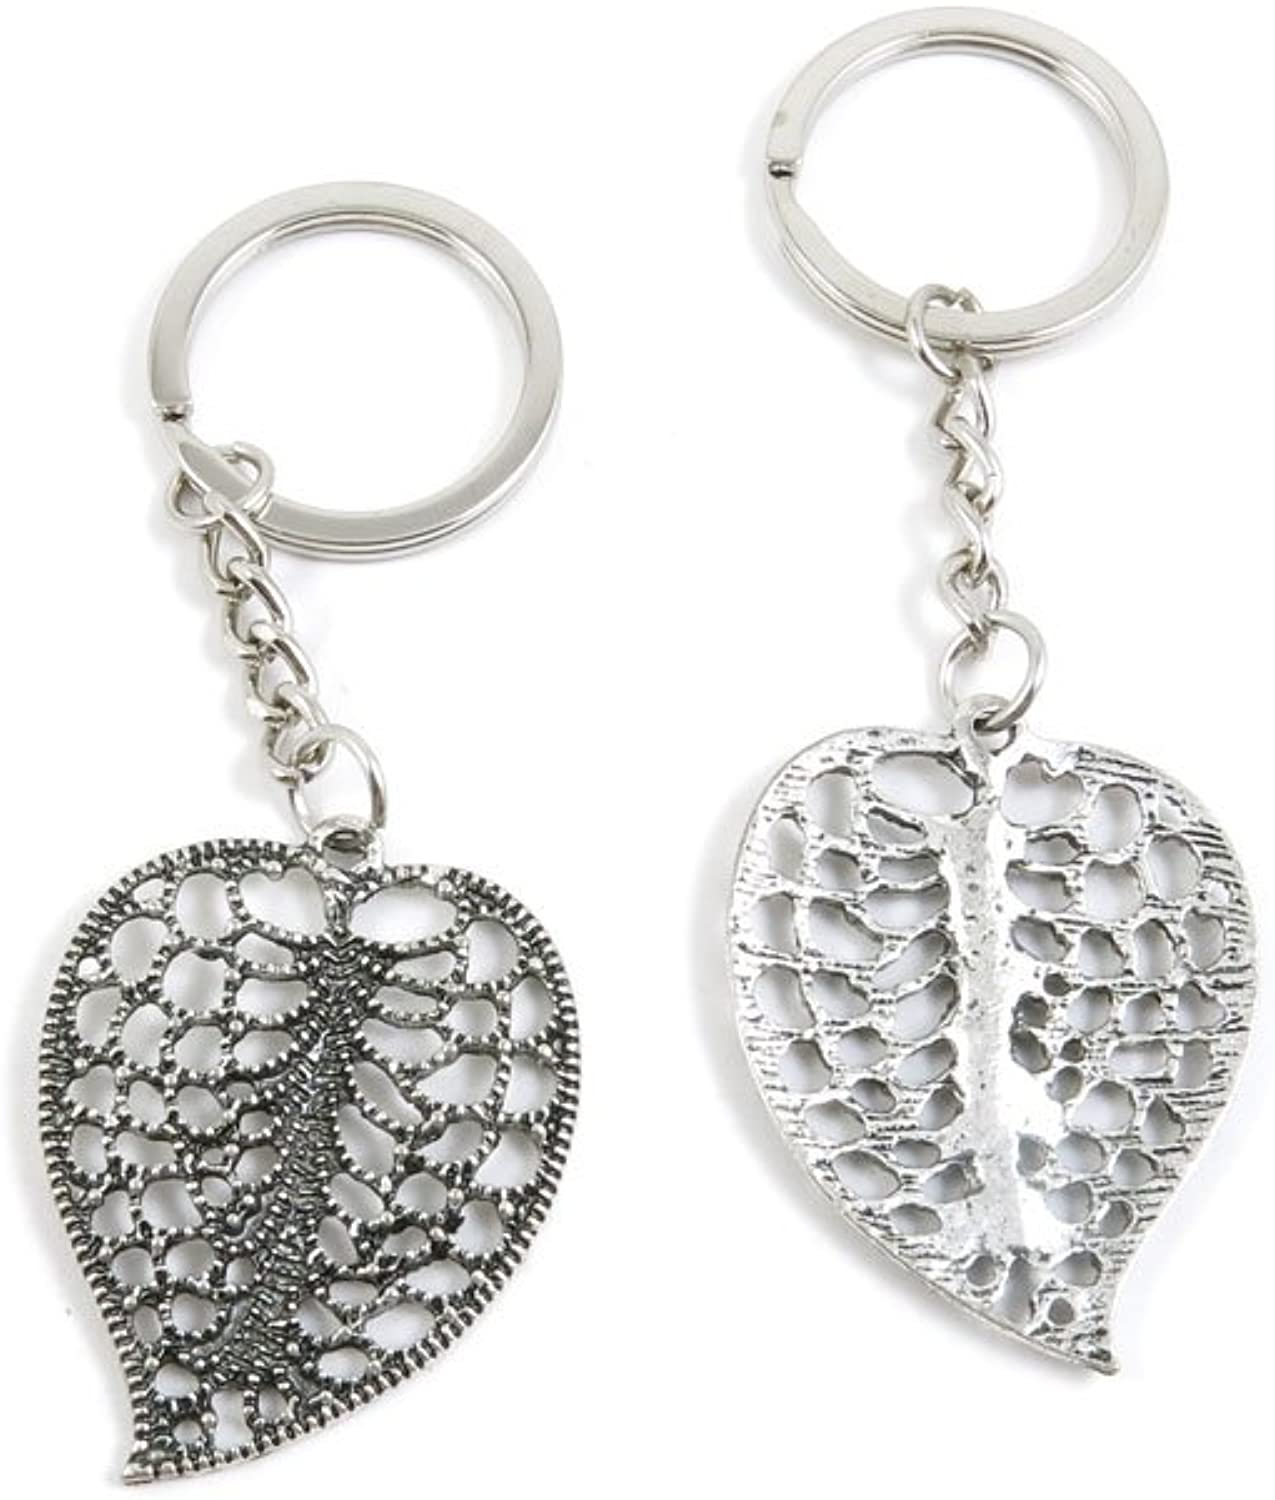 100 Pieces Keychain Keyring Door Car Key Chain Ring Tag Charms Bulk Supply Jewelry Making Clasp Findings U9AE8B Hollow Leaf